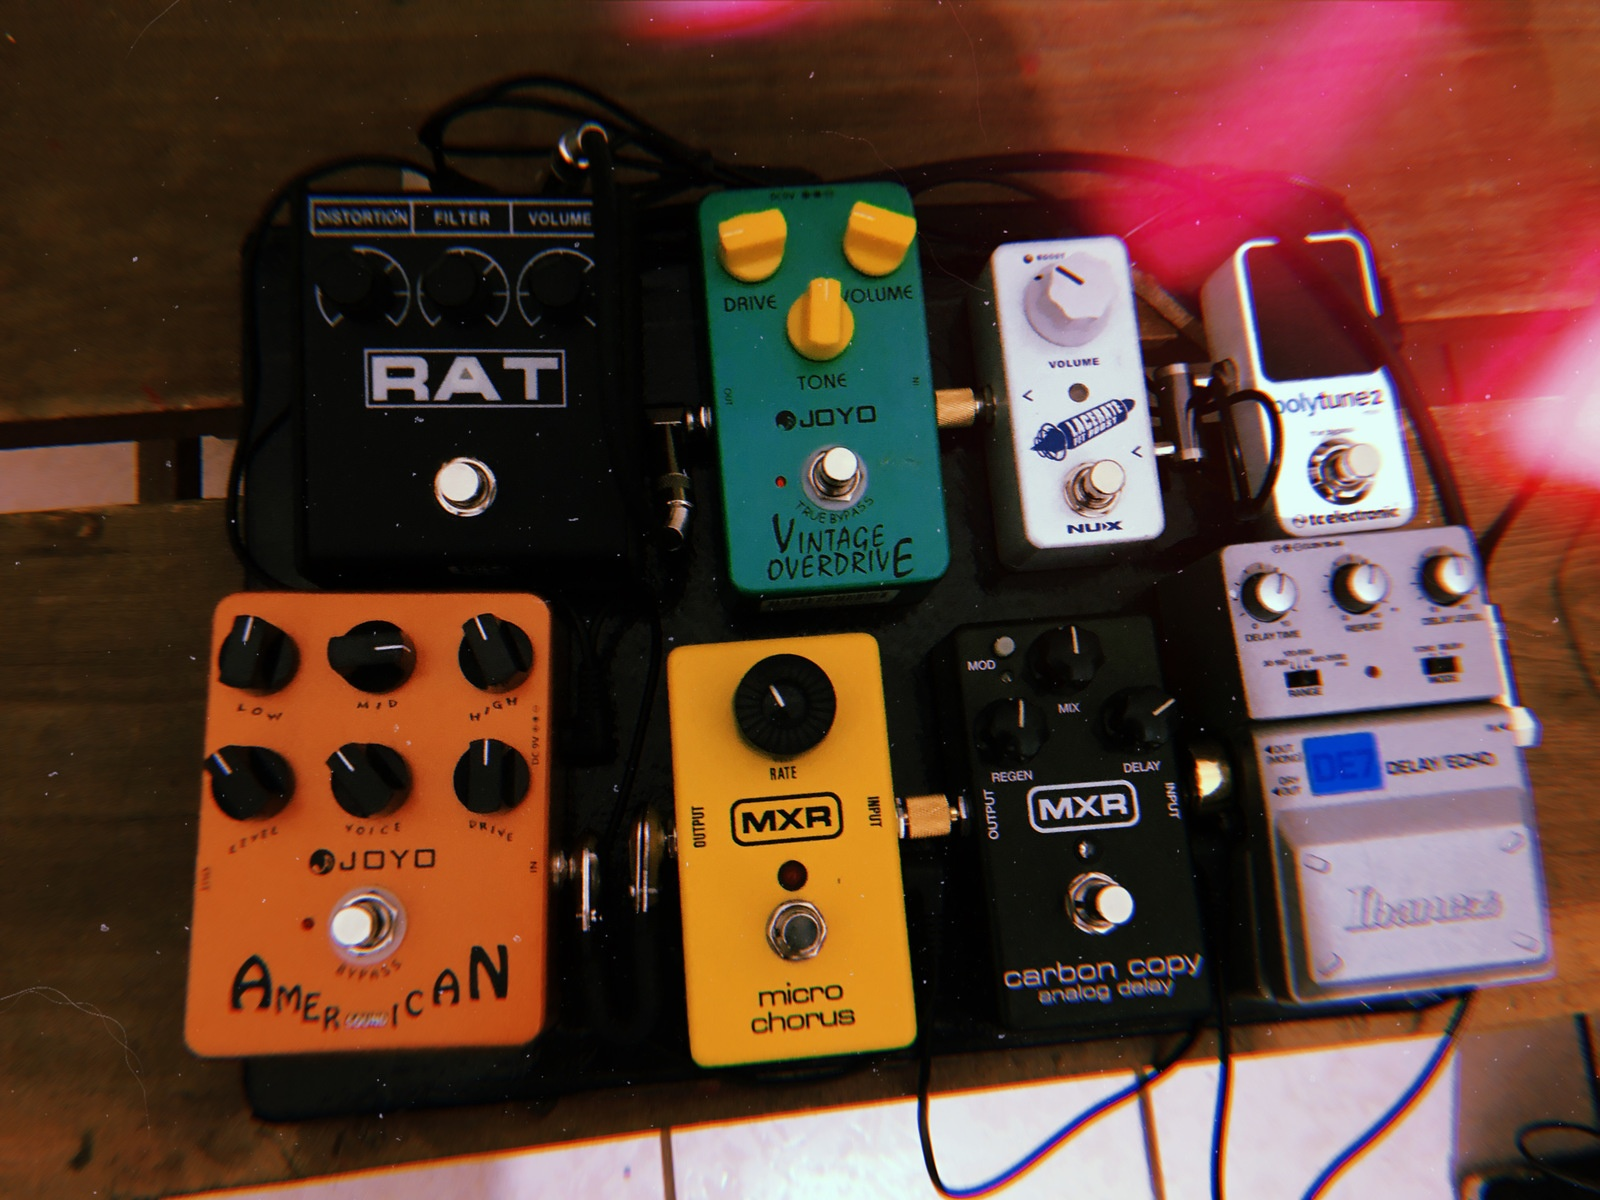 Photo of Ibanez Tone-Lok DE7 Stereo Delay/Echo and more gear in a pedalboard and studio